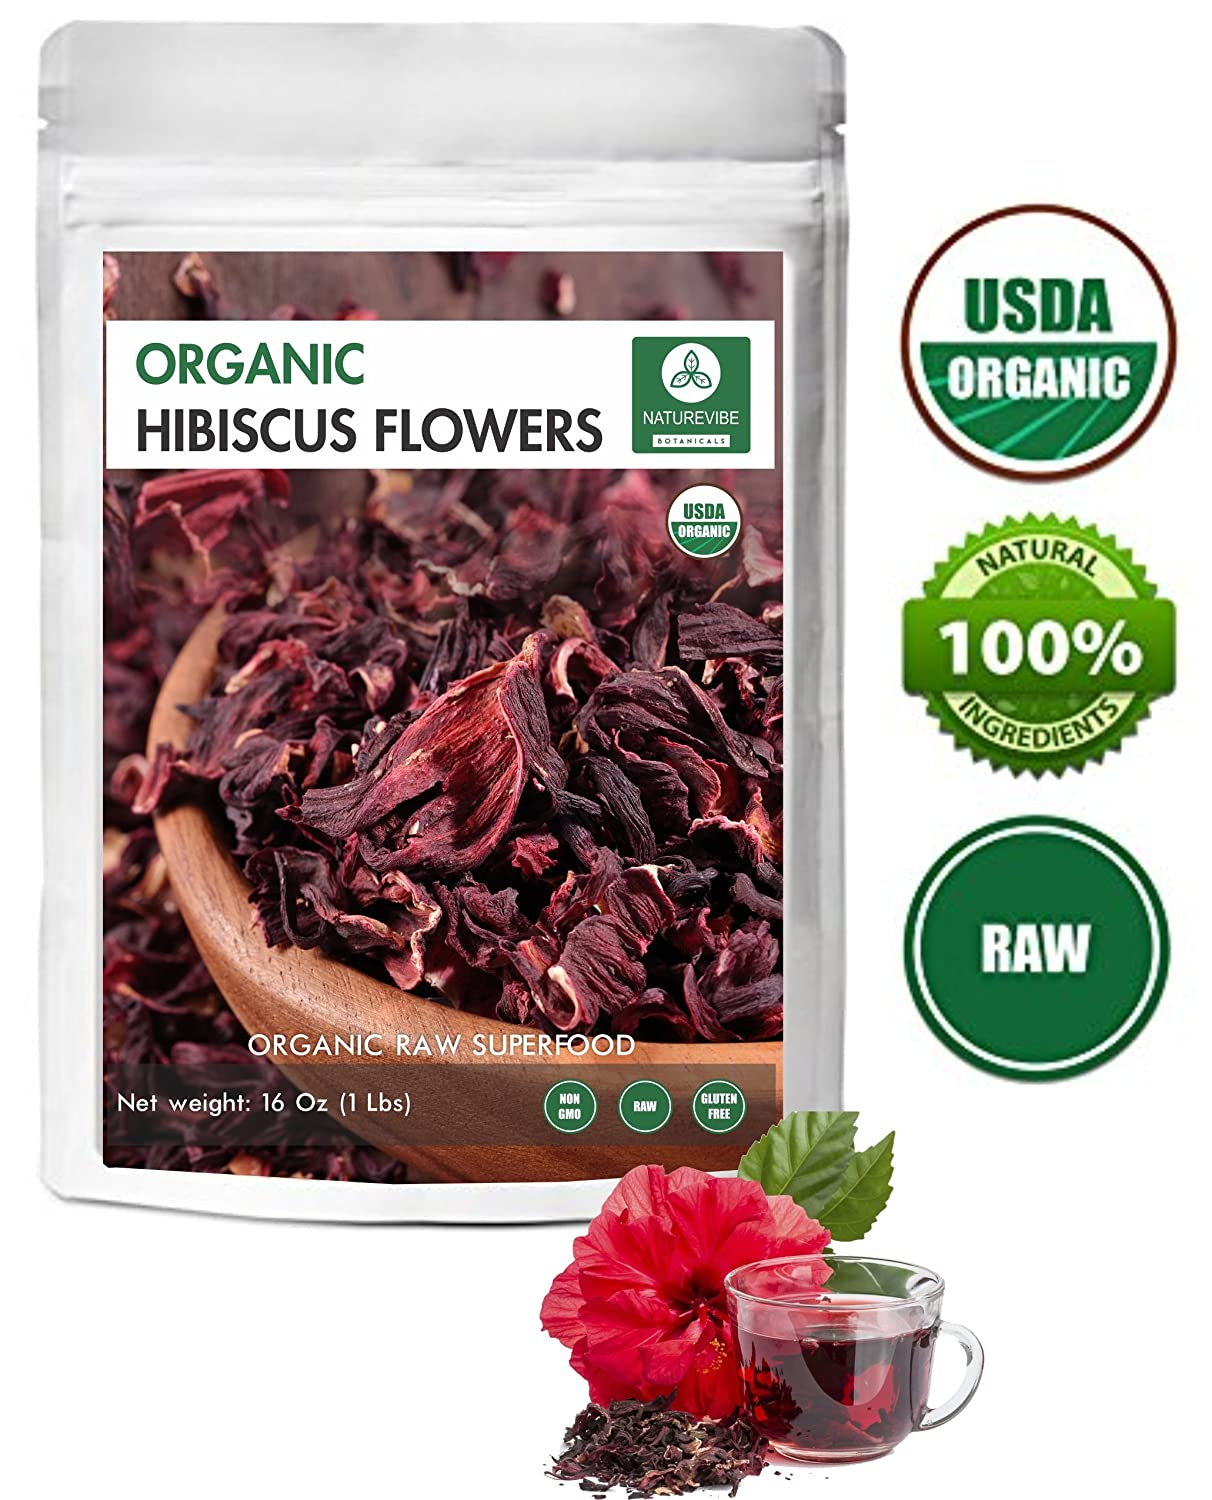 Amazon organic hibiscus flowers 16oz resealable bag indian amazon organic hibiscus flowers 16oz resealable bag indian origin by naturevibe botanicals packaging may vary grocery gourmet food izmirmasajfo